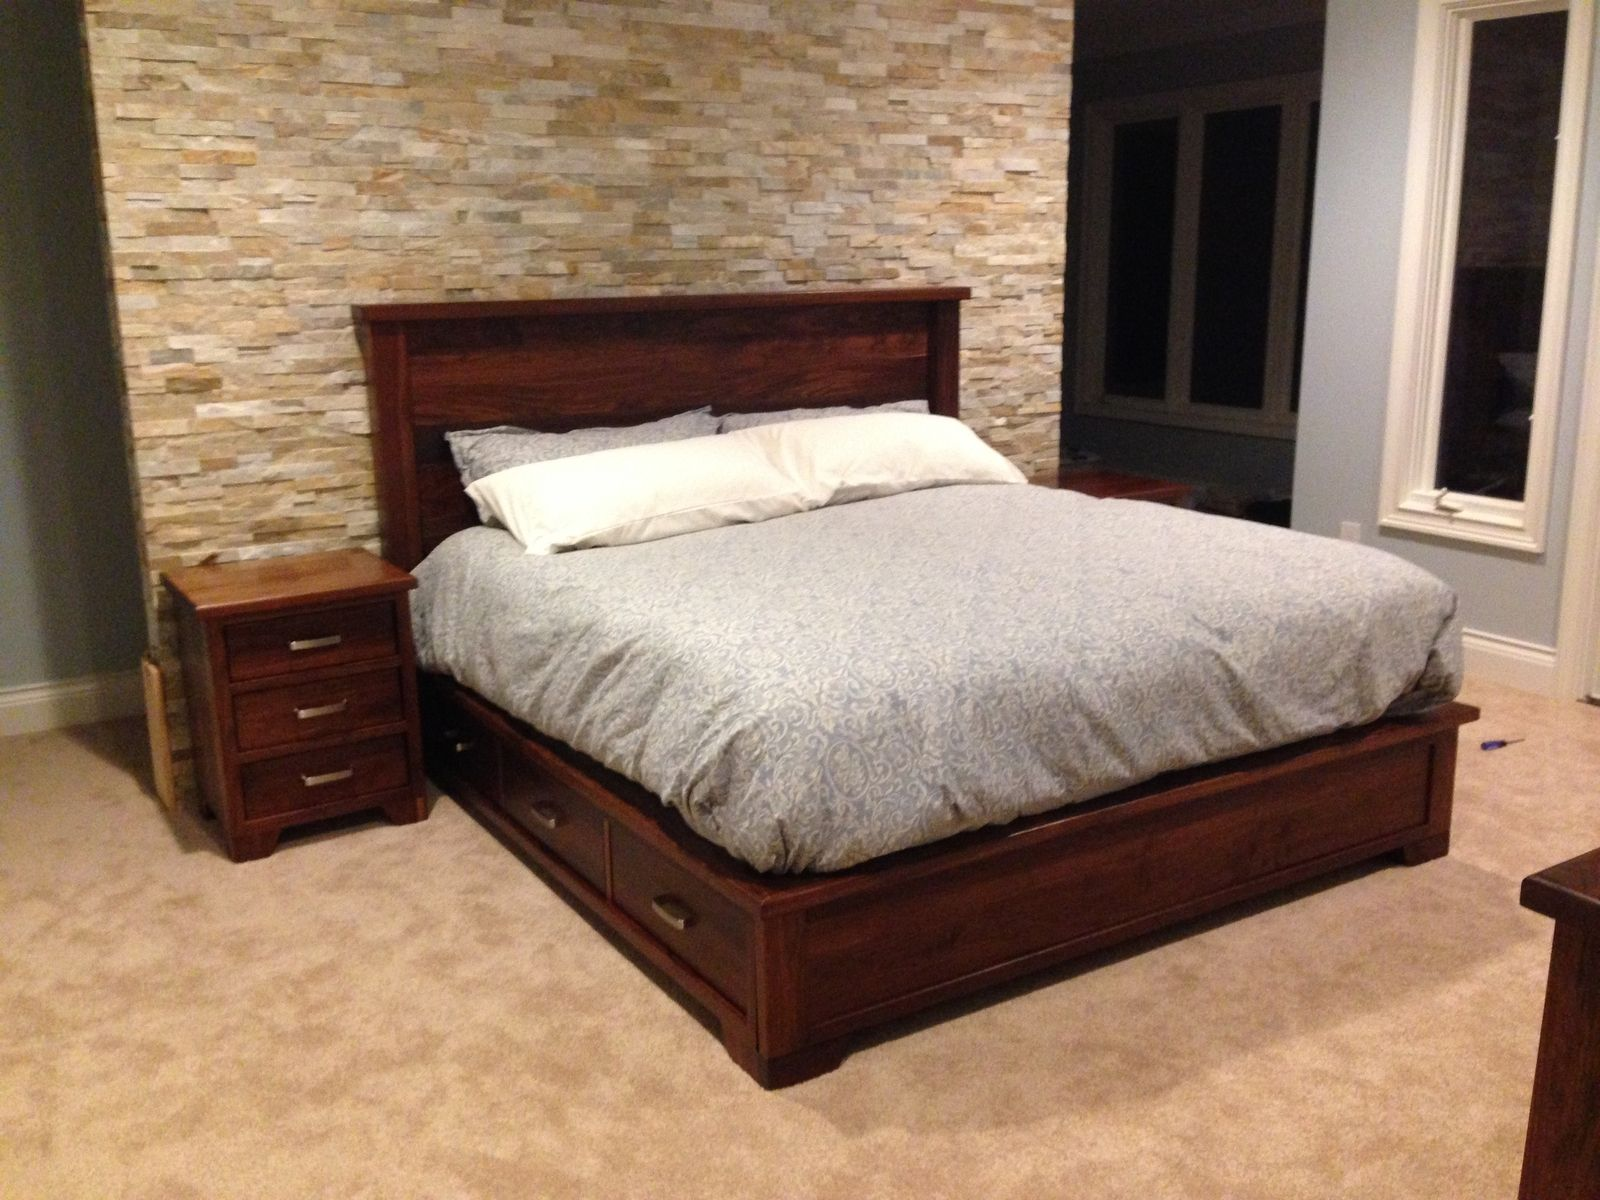 Solid Walnut Bedroom Furniture Hand Crafted Walnut Bedroom Set By The Plane Edge Llc